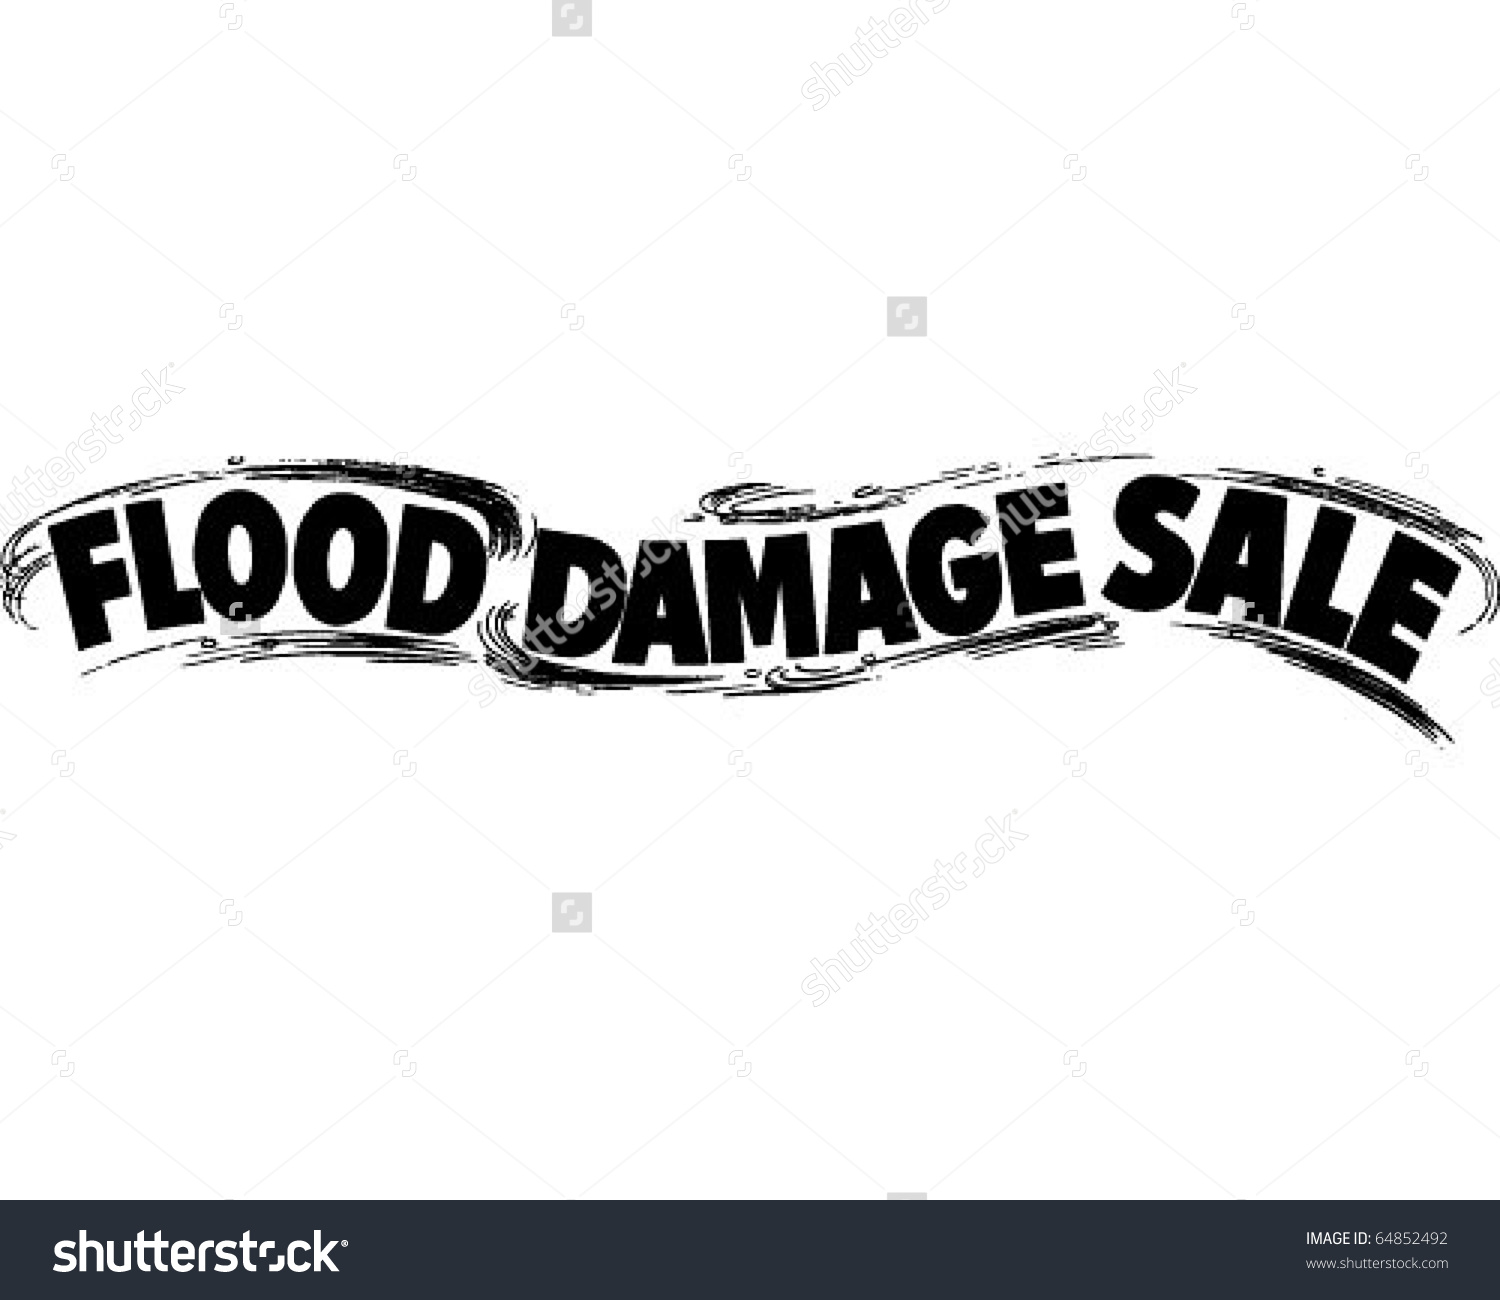 Flood Damage Sale.